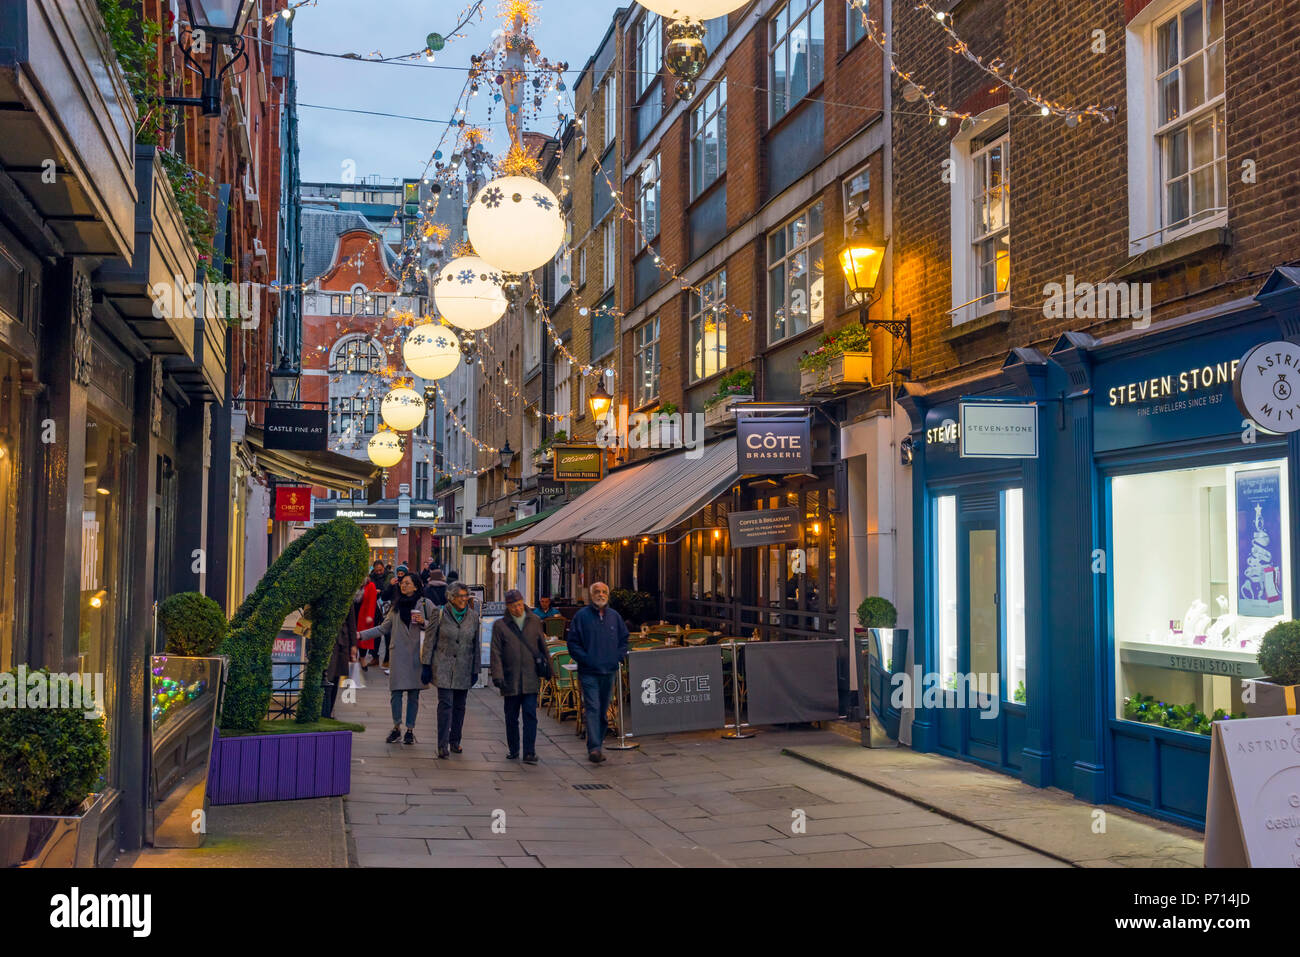 Christmas decorations, St. Christopher's Place, off Oxford Street, The West End, London, England, United Kingdom, Europe - Stock Image